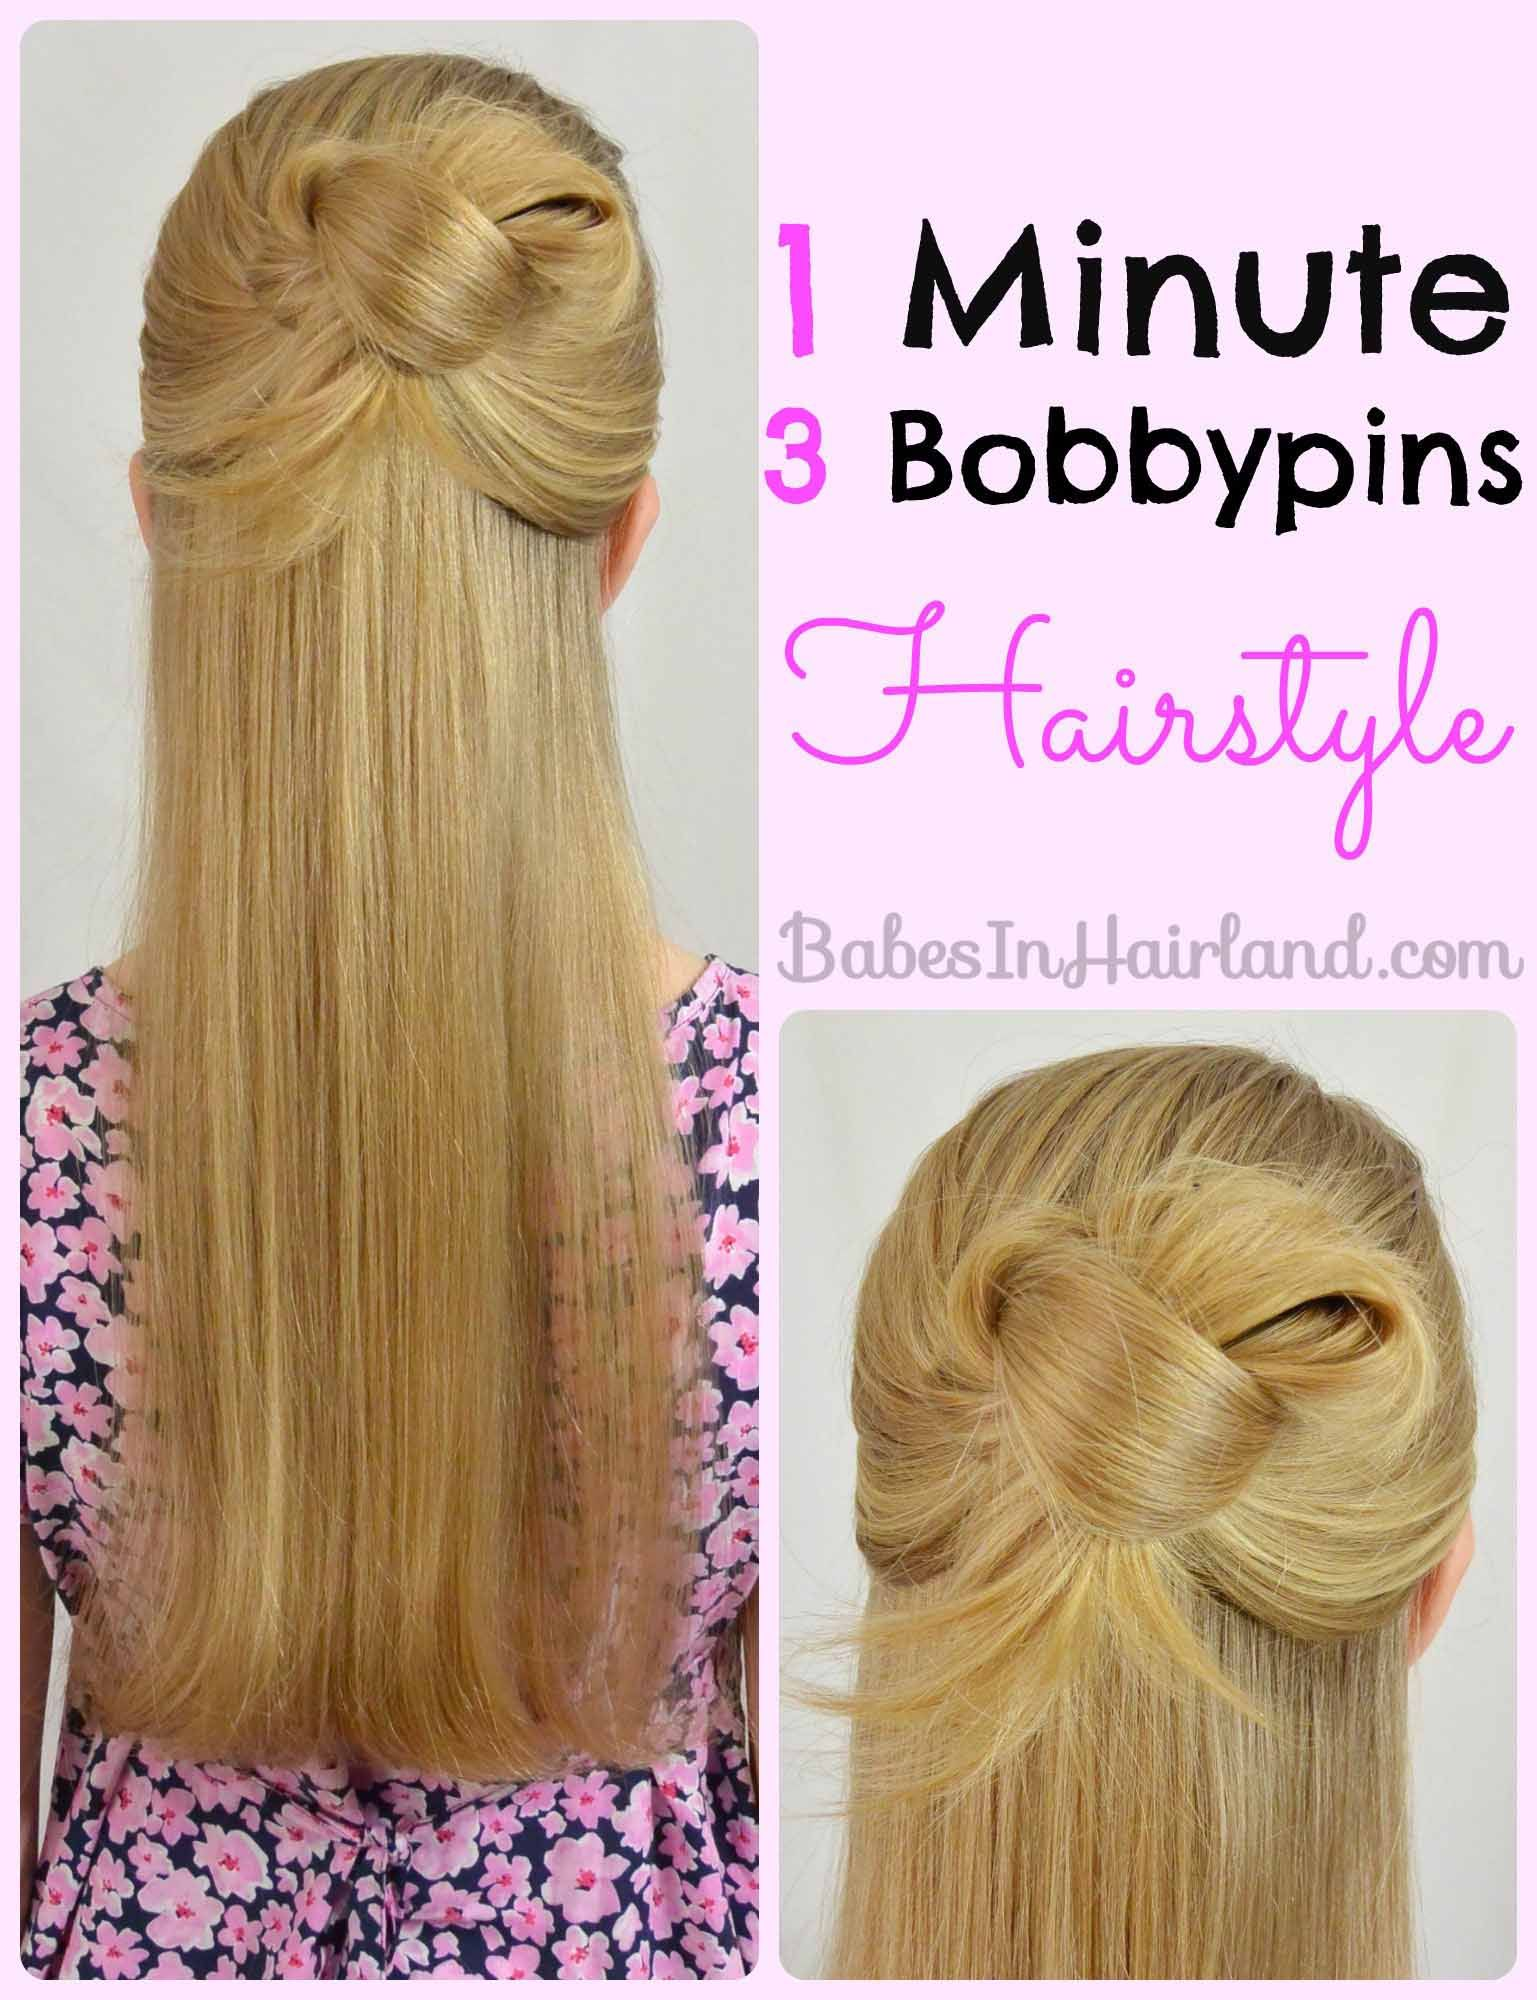 Easy 1 Minute Knotted Hairstyle